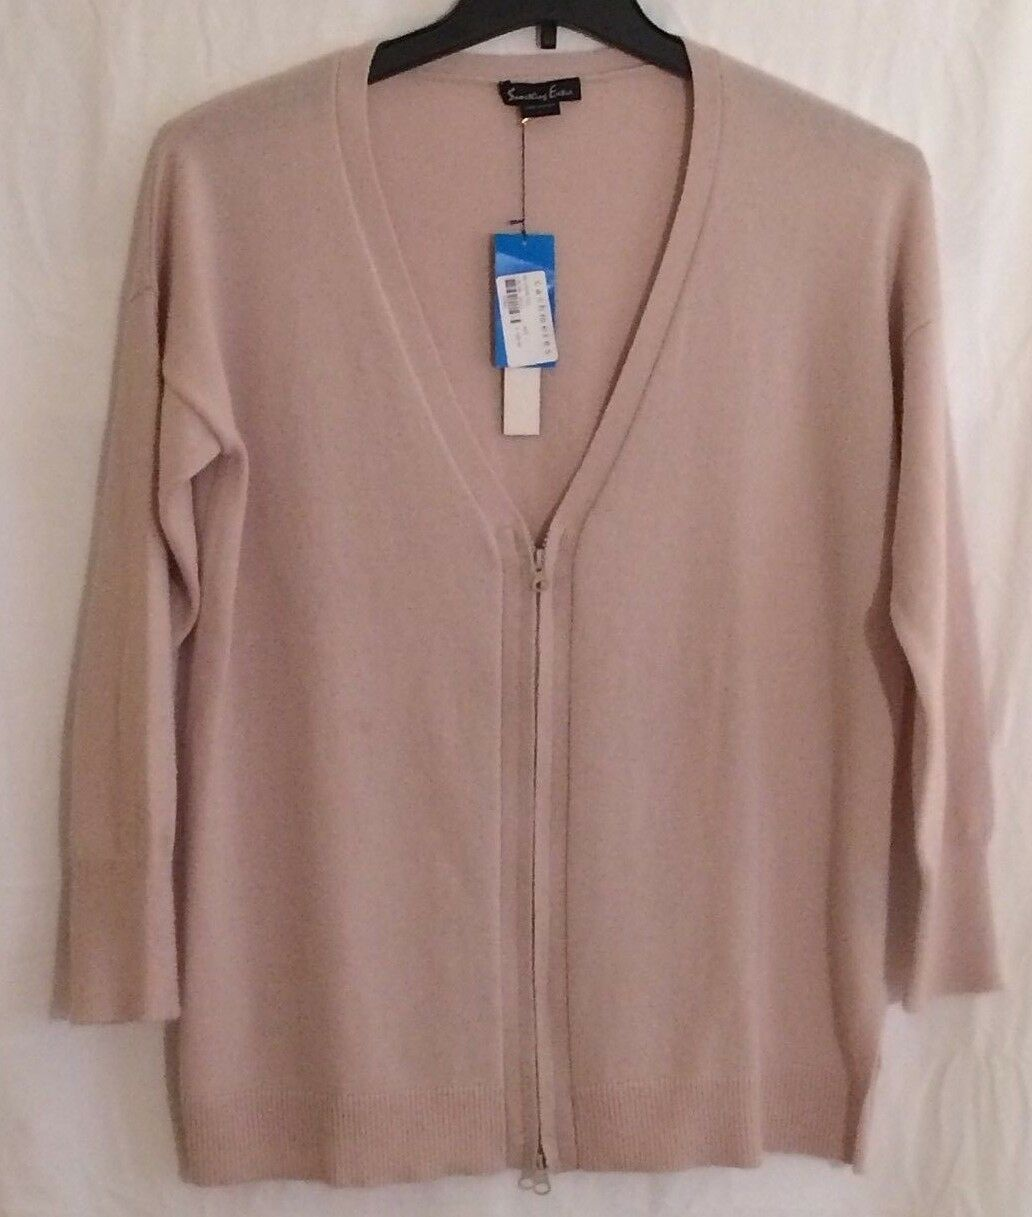 Wool Cashmere Blend Zip up Sweater Size Large color Sand from Something Extra